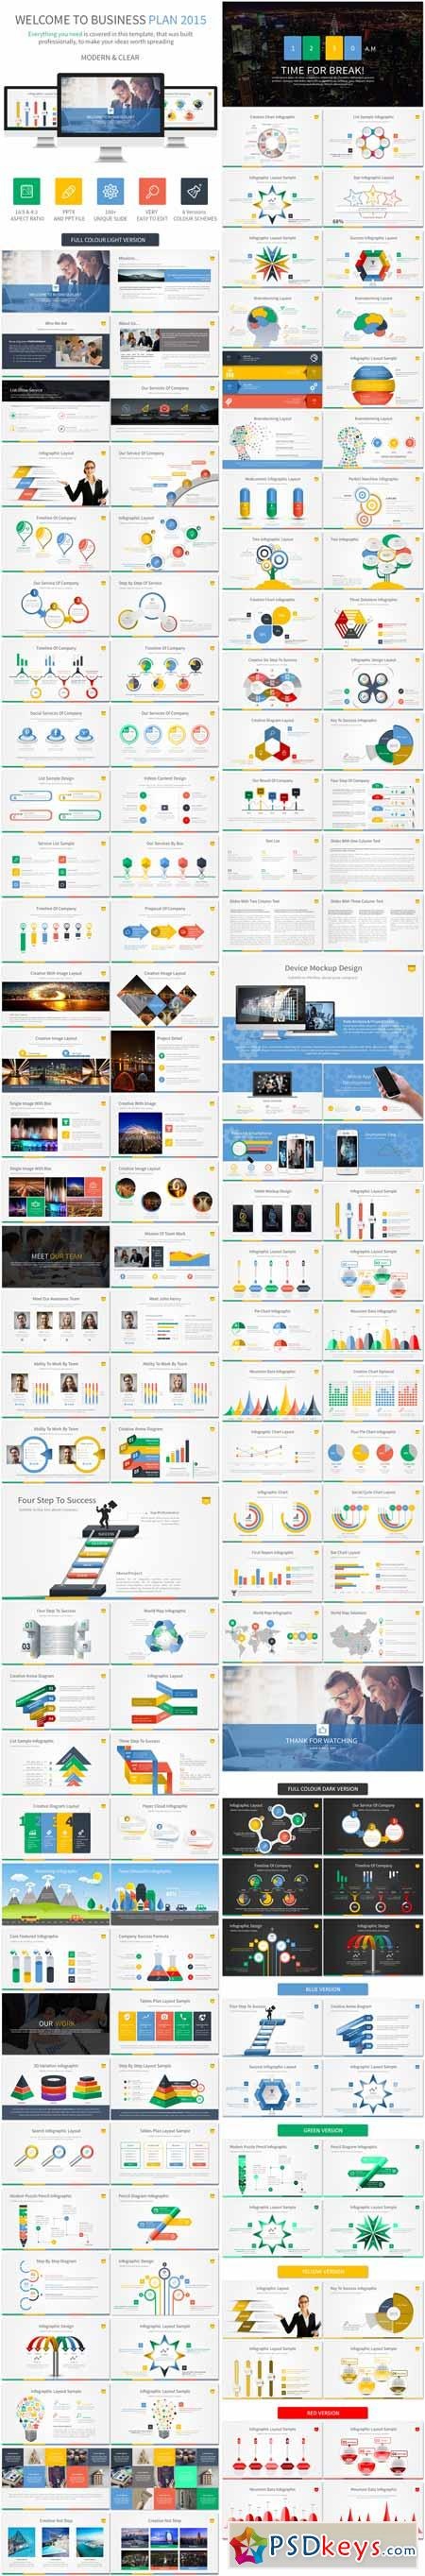 Business Plan Powerpoint Templates Insssrenterprisesco - Business plan powerpoint template free download